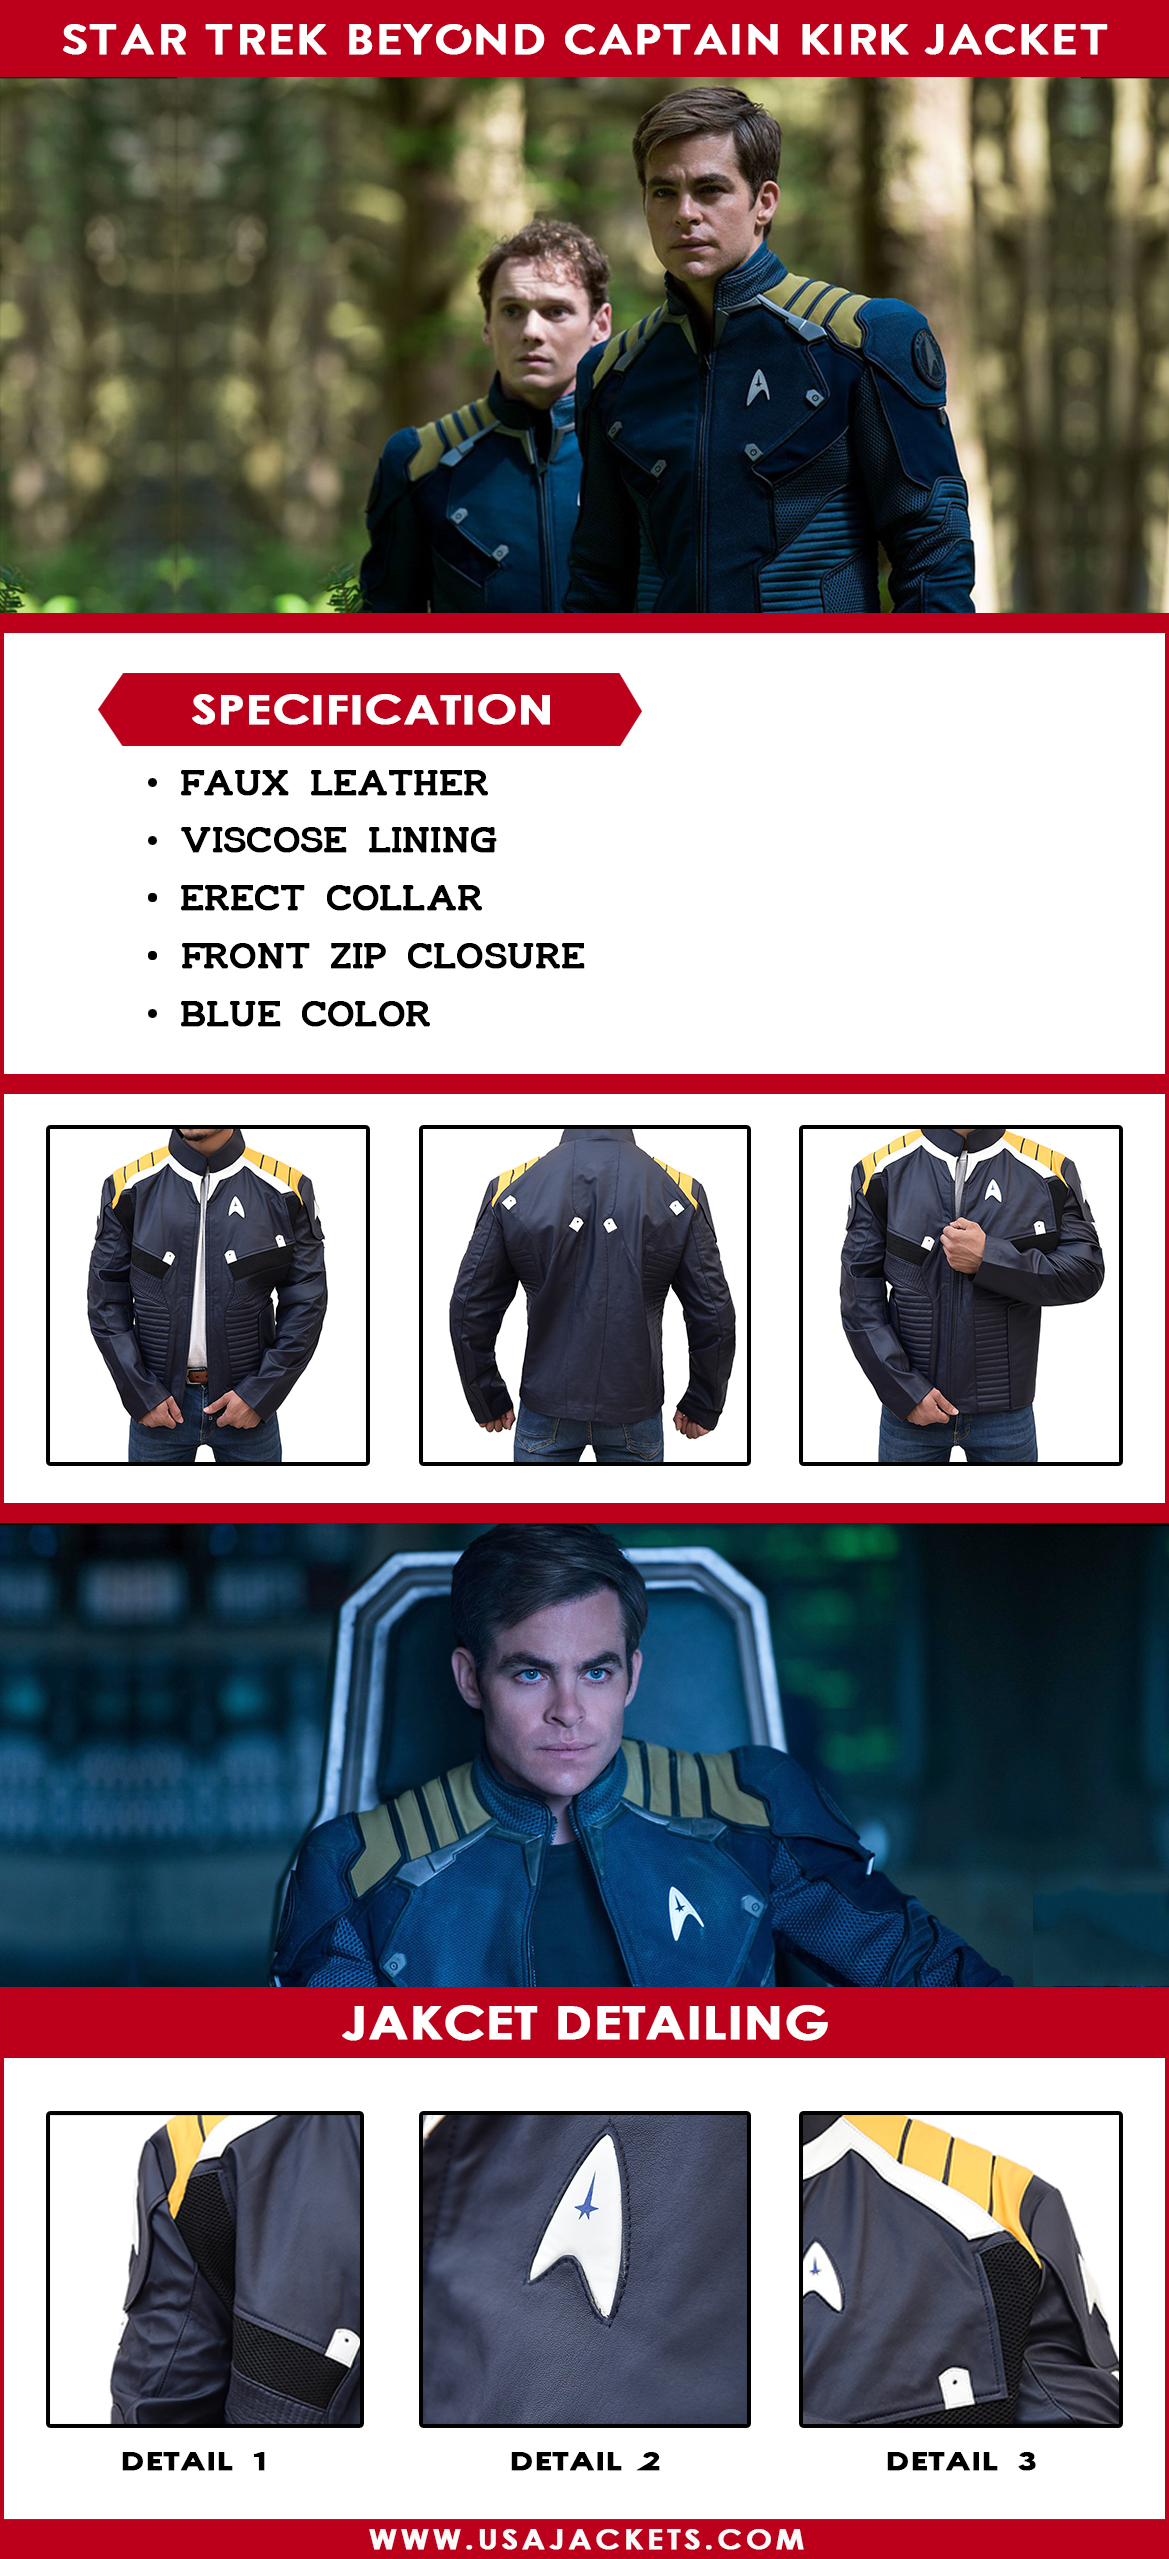 Star Trek Beyond Captain Kirk Uniform Jacket